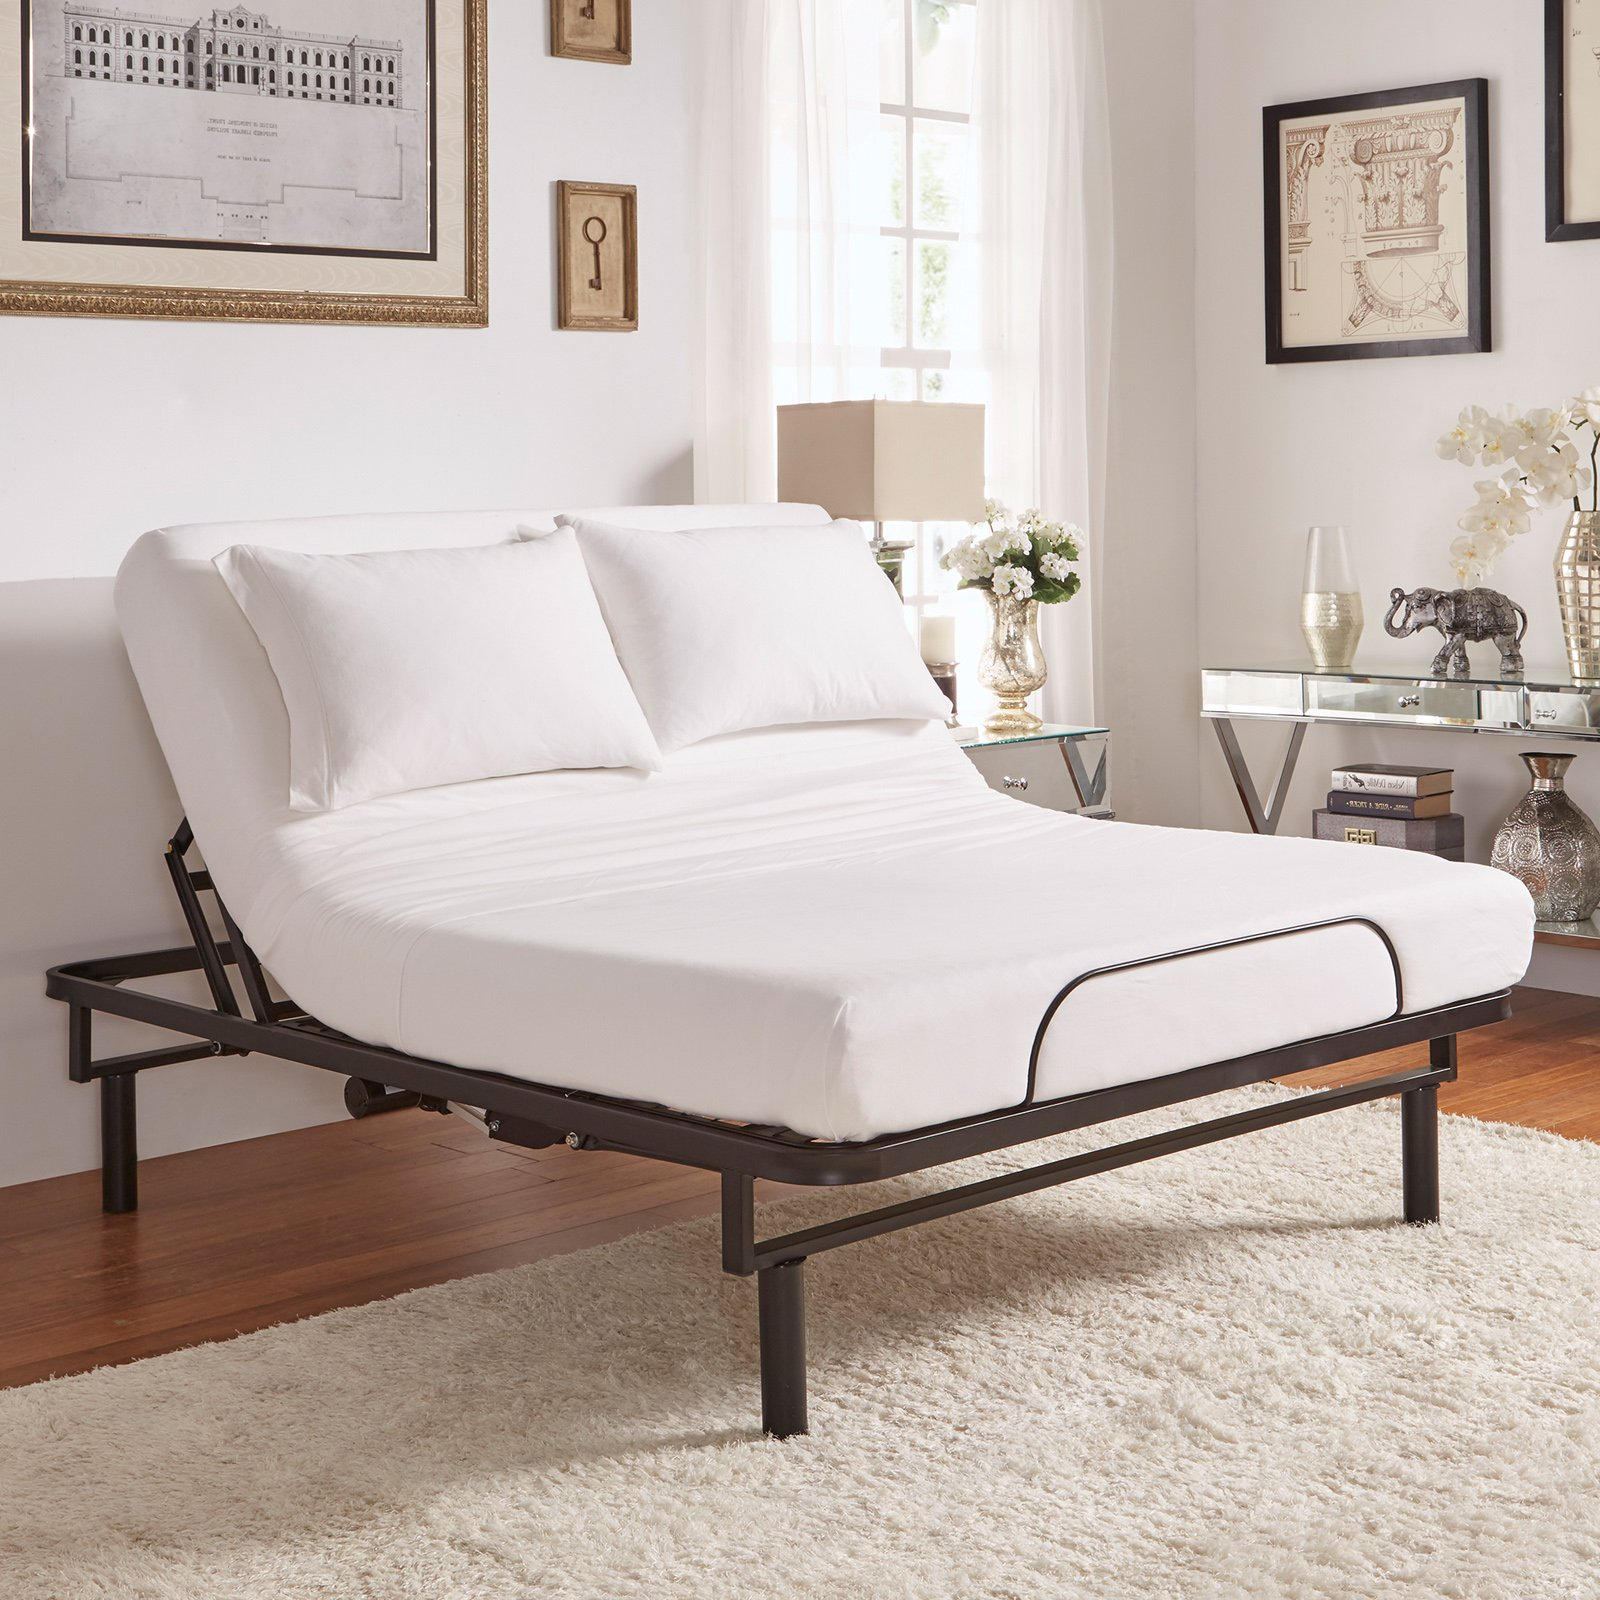 Weston Home Ron Adjustable Electric Bed Base With Wireless Remote